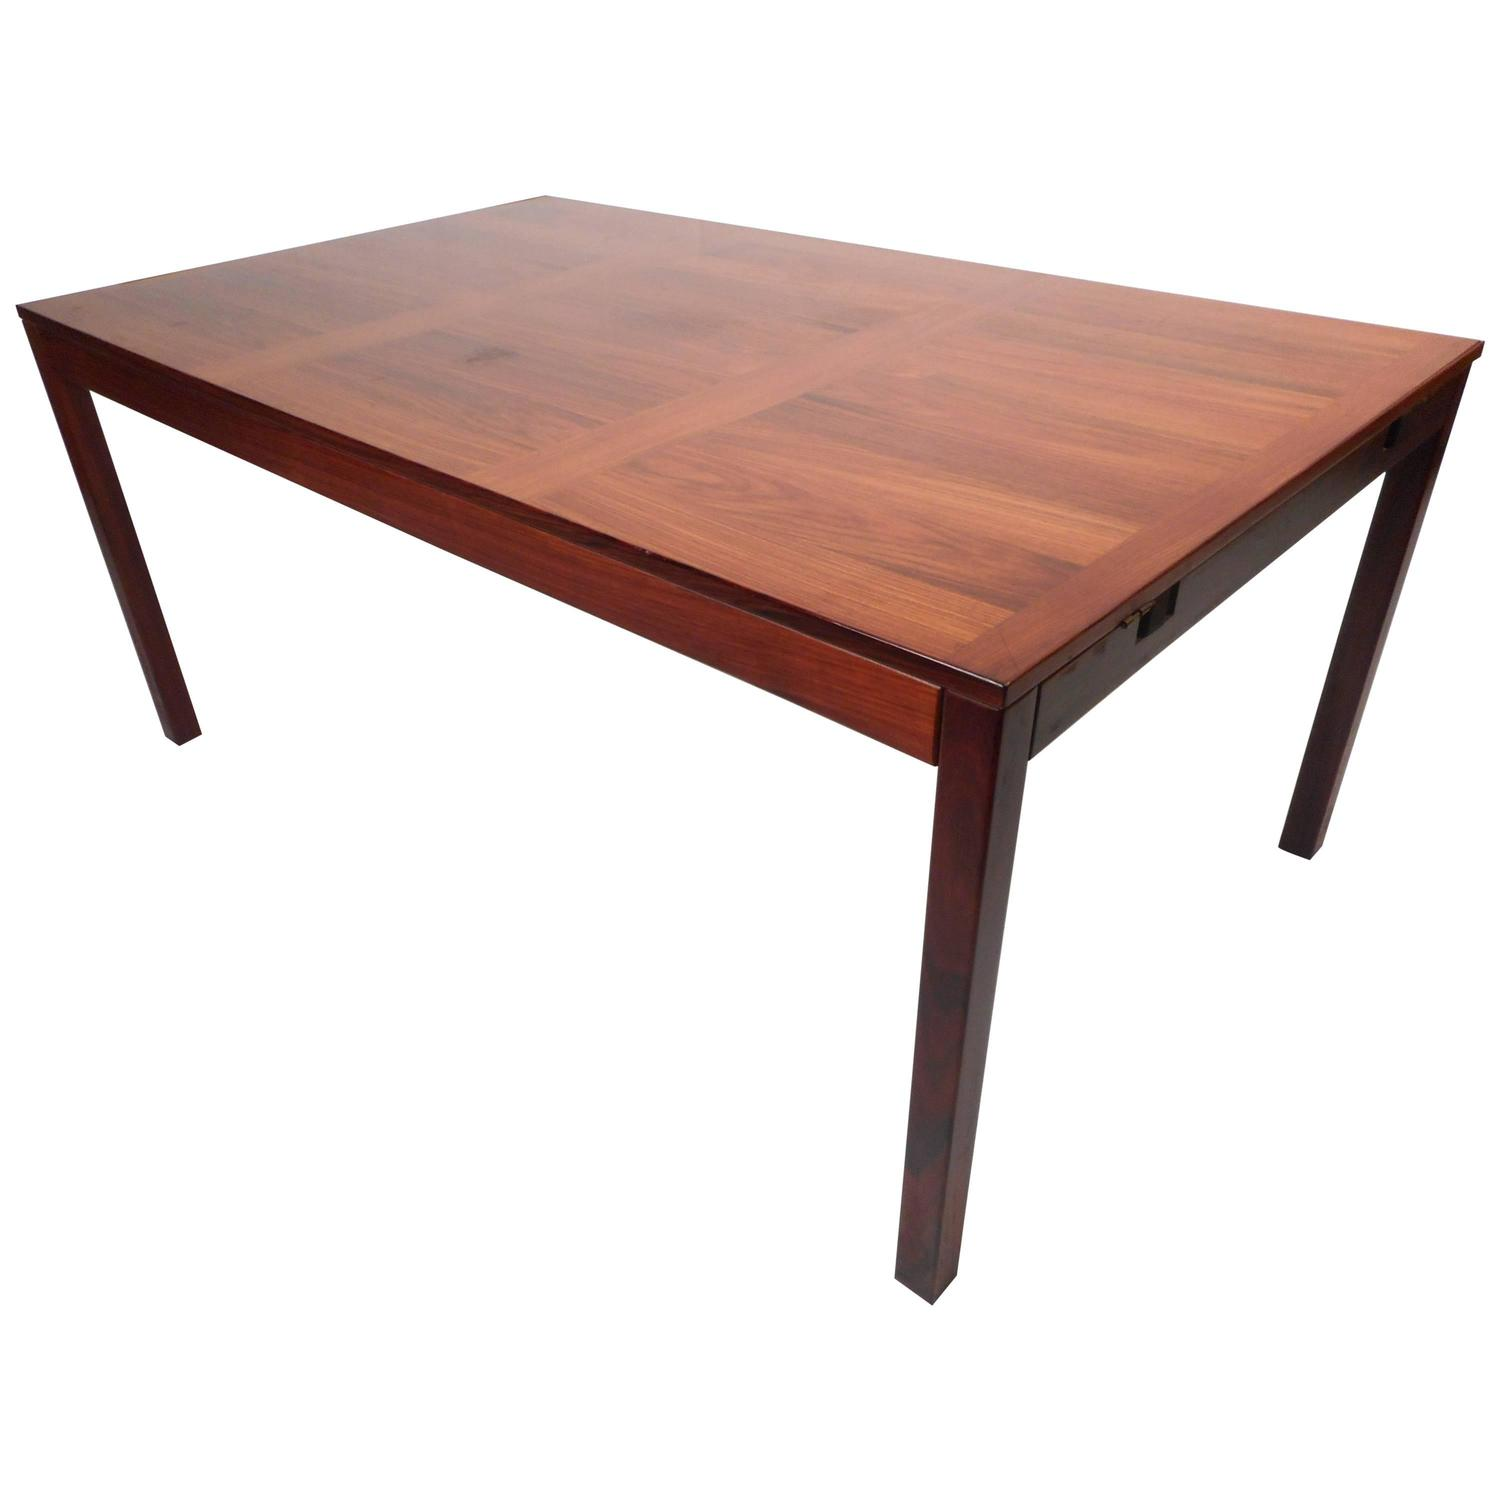 Teak Extendable Dining Table Image collections Dining  : 6808533z from sorahana.info size 1500 x 1500 jpeg 58kB